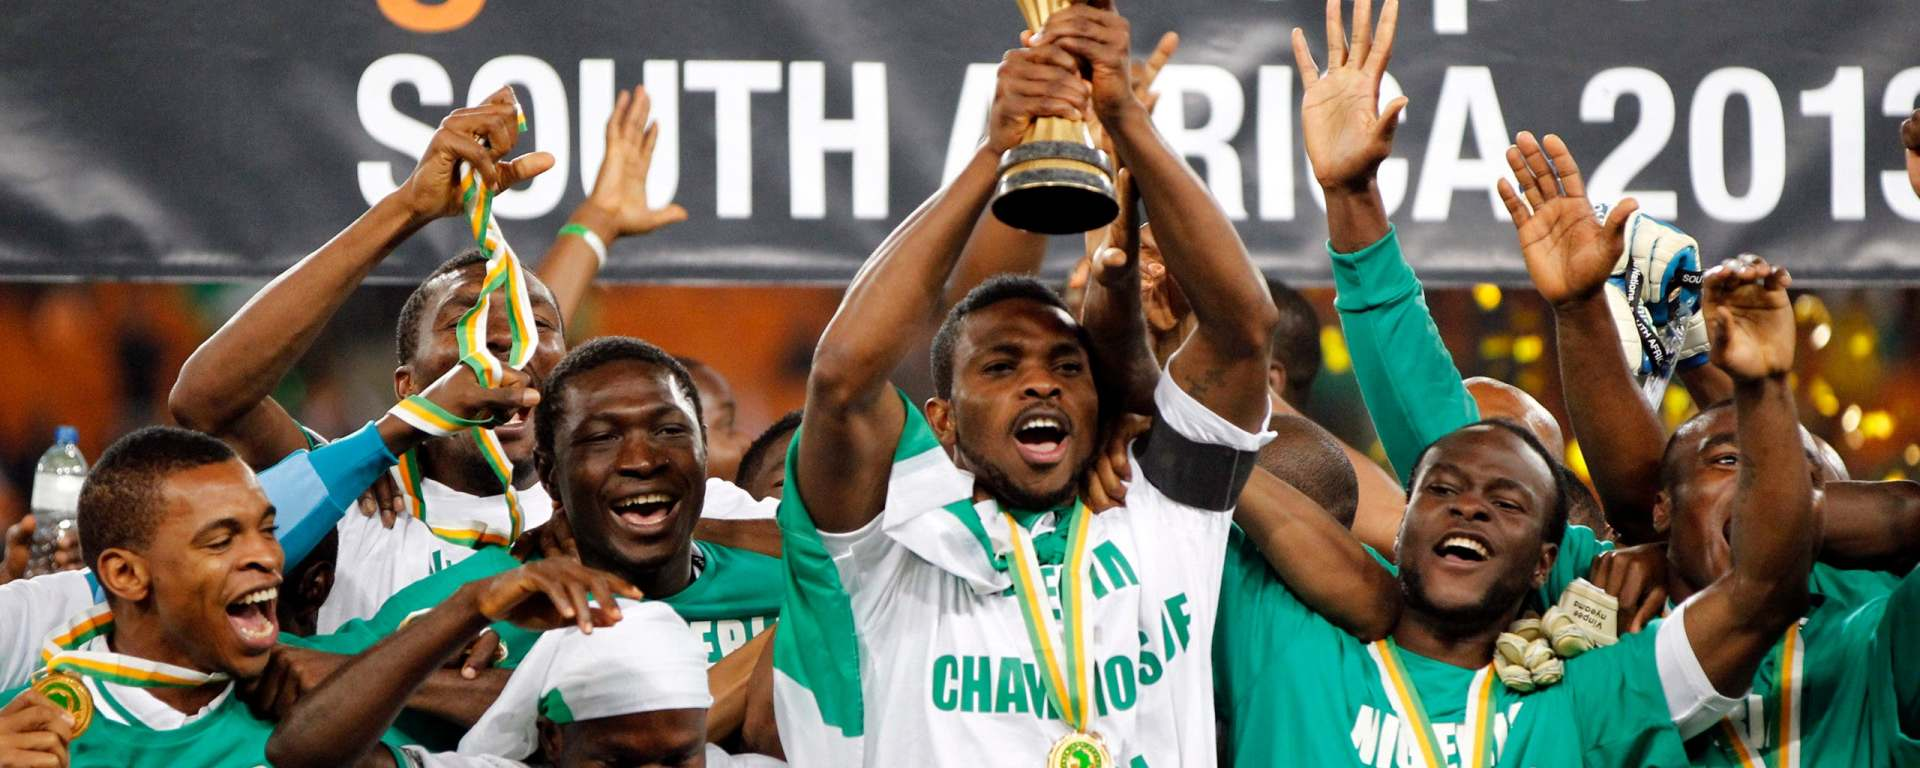 AFCON 2013 Champions